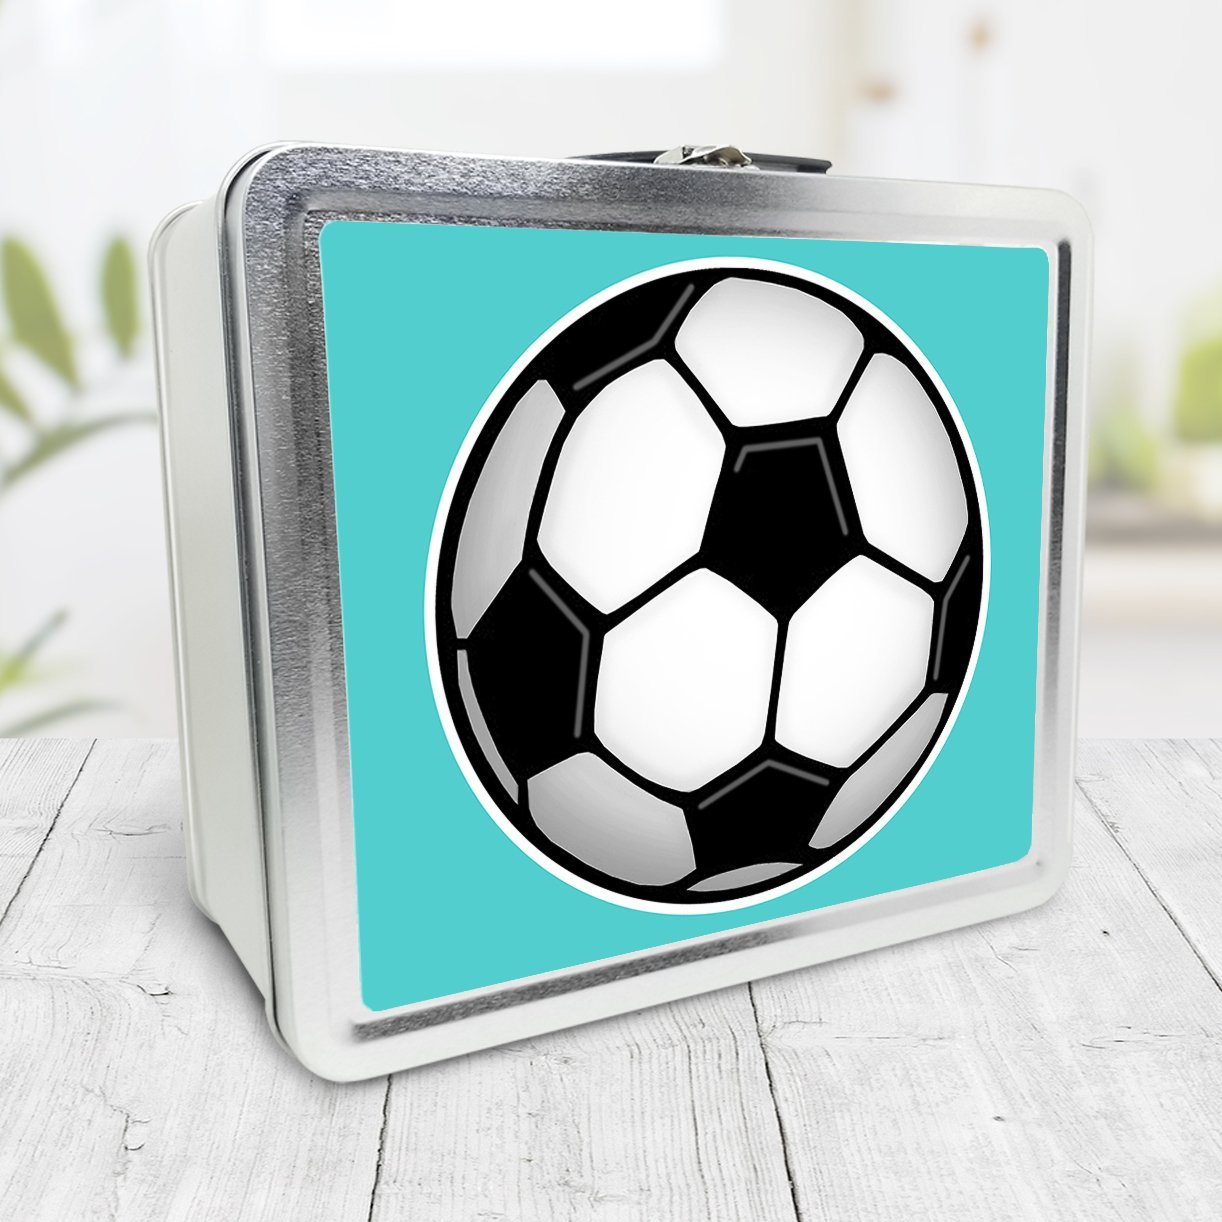 Soccer Ball Teal Lunch Box at Speckle Rock